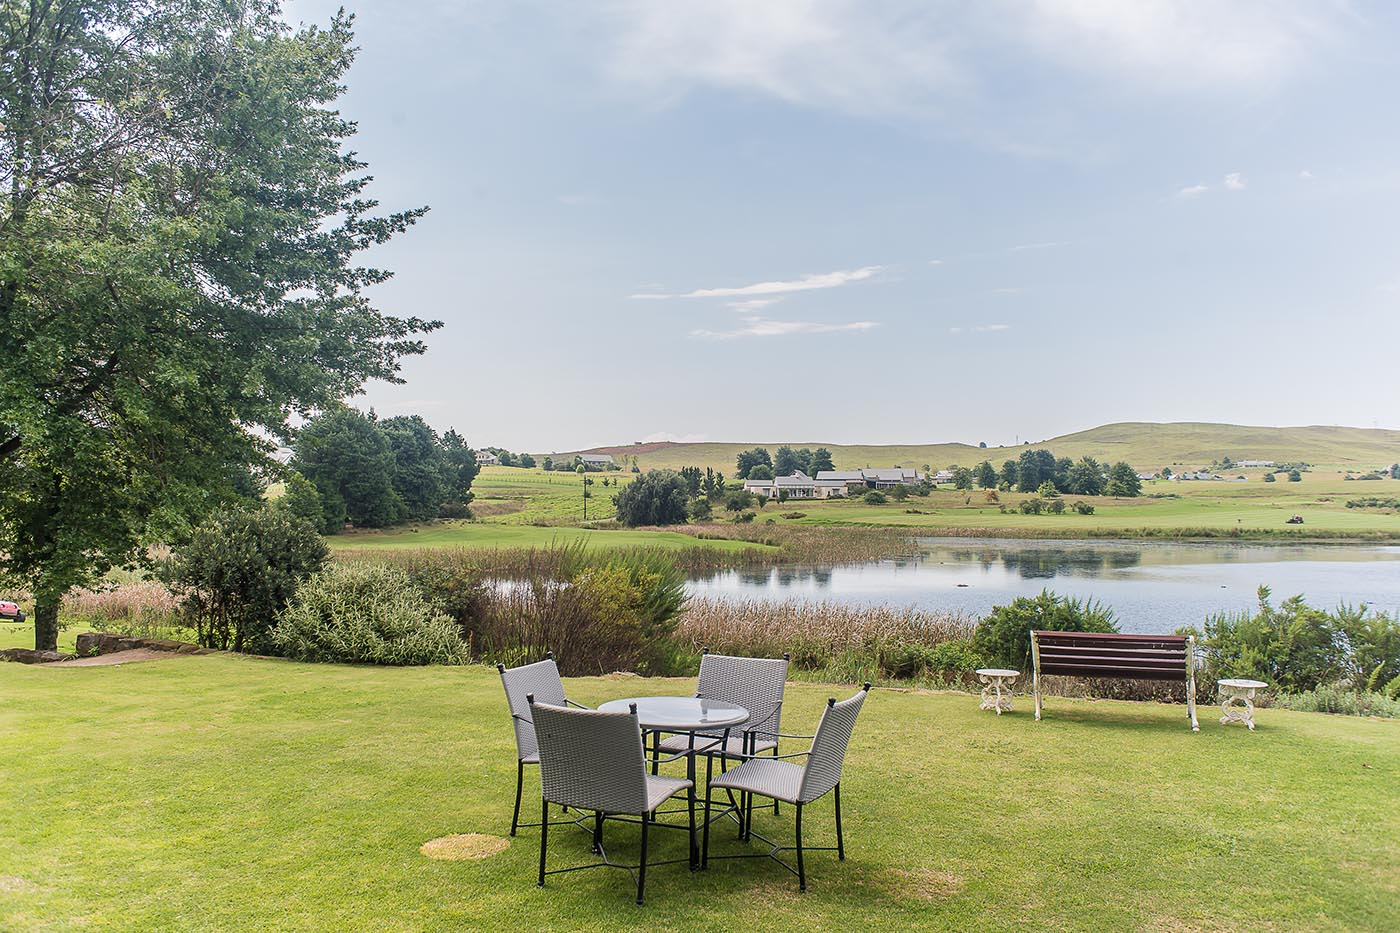 gowrie-farm-golf-lodge-gallery-kzn-development-midlands-drakensberg-Nottingham-Road